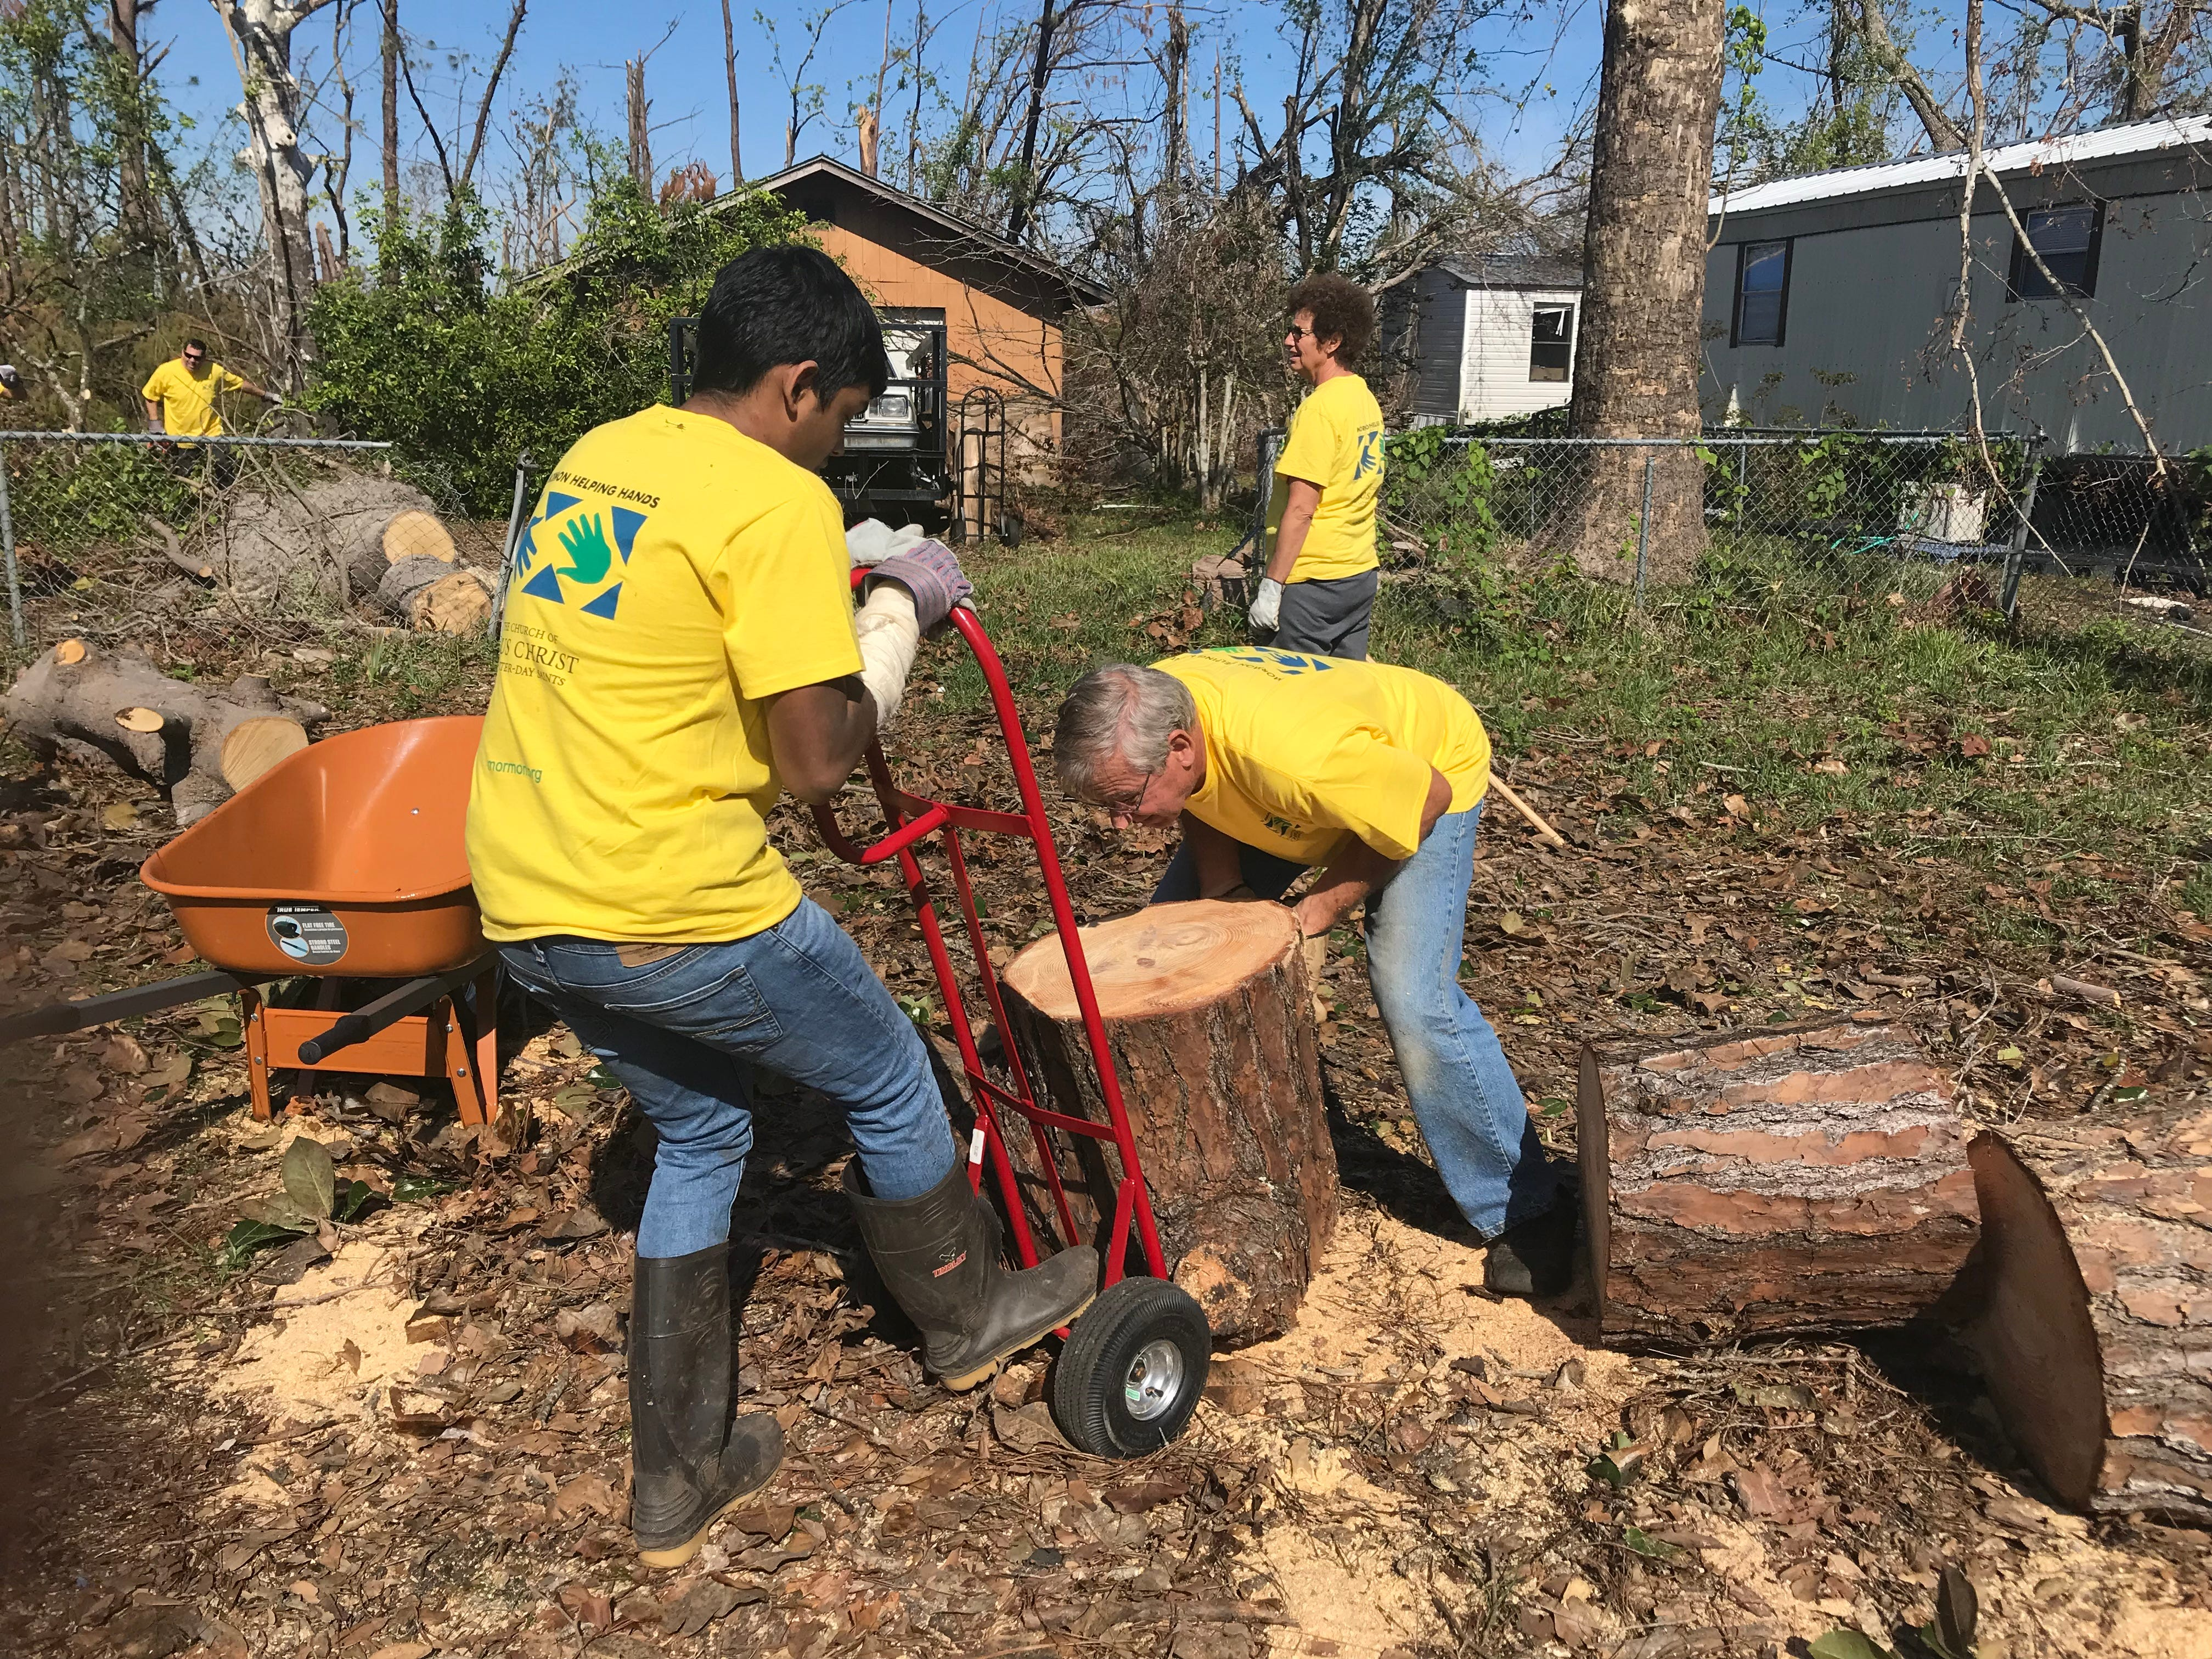 George Edge loads a tree stump onto a dolly to carry out to the debris pile.